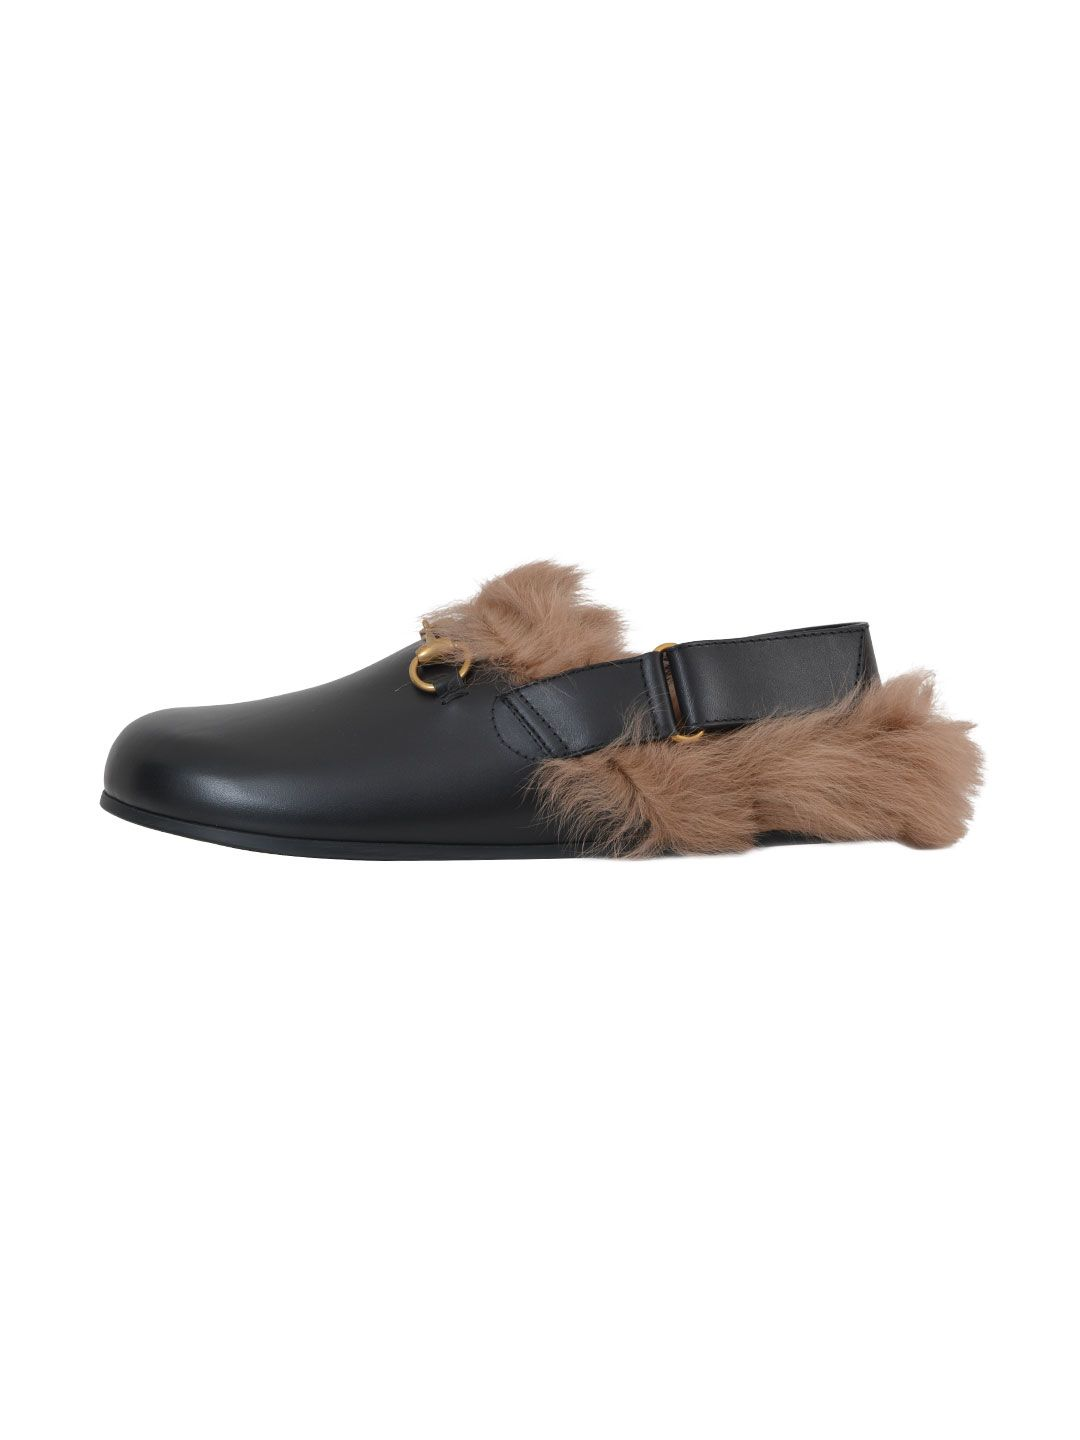 Gucci Horsebit Slipper